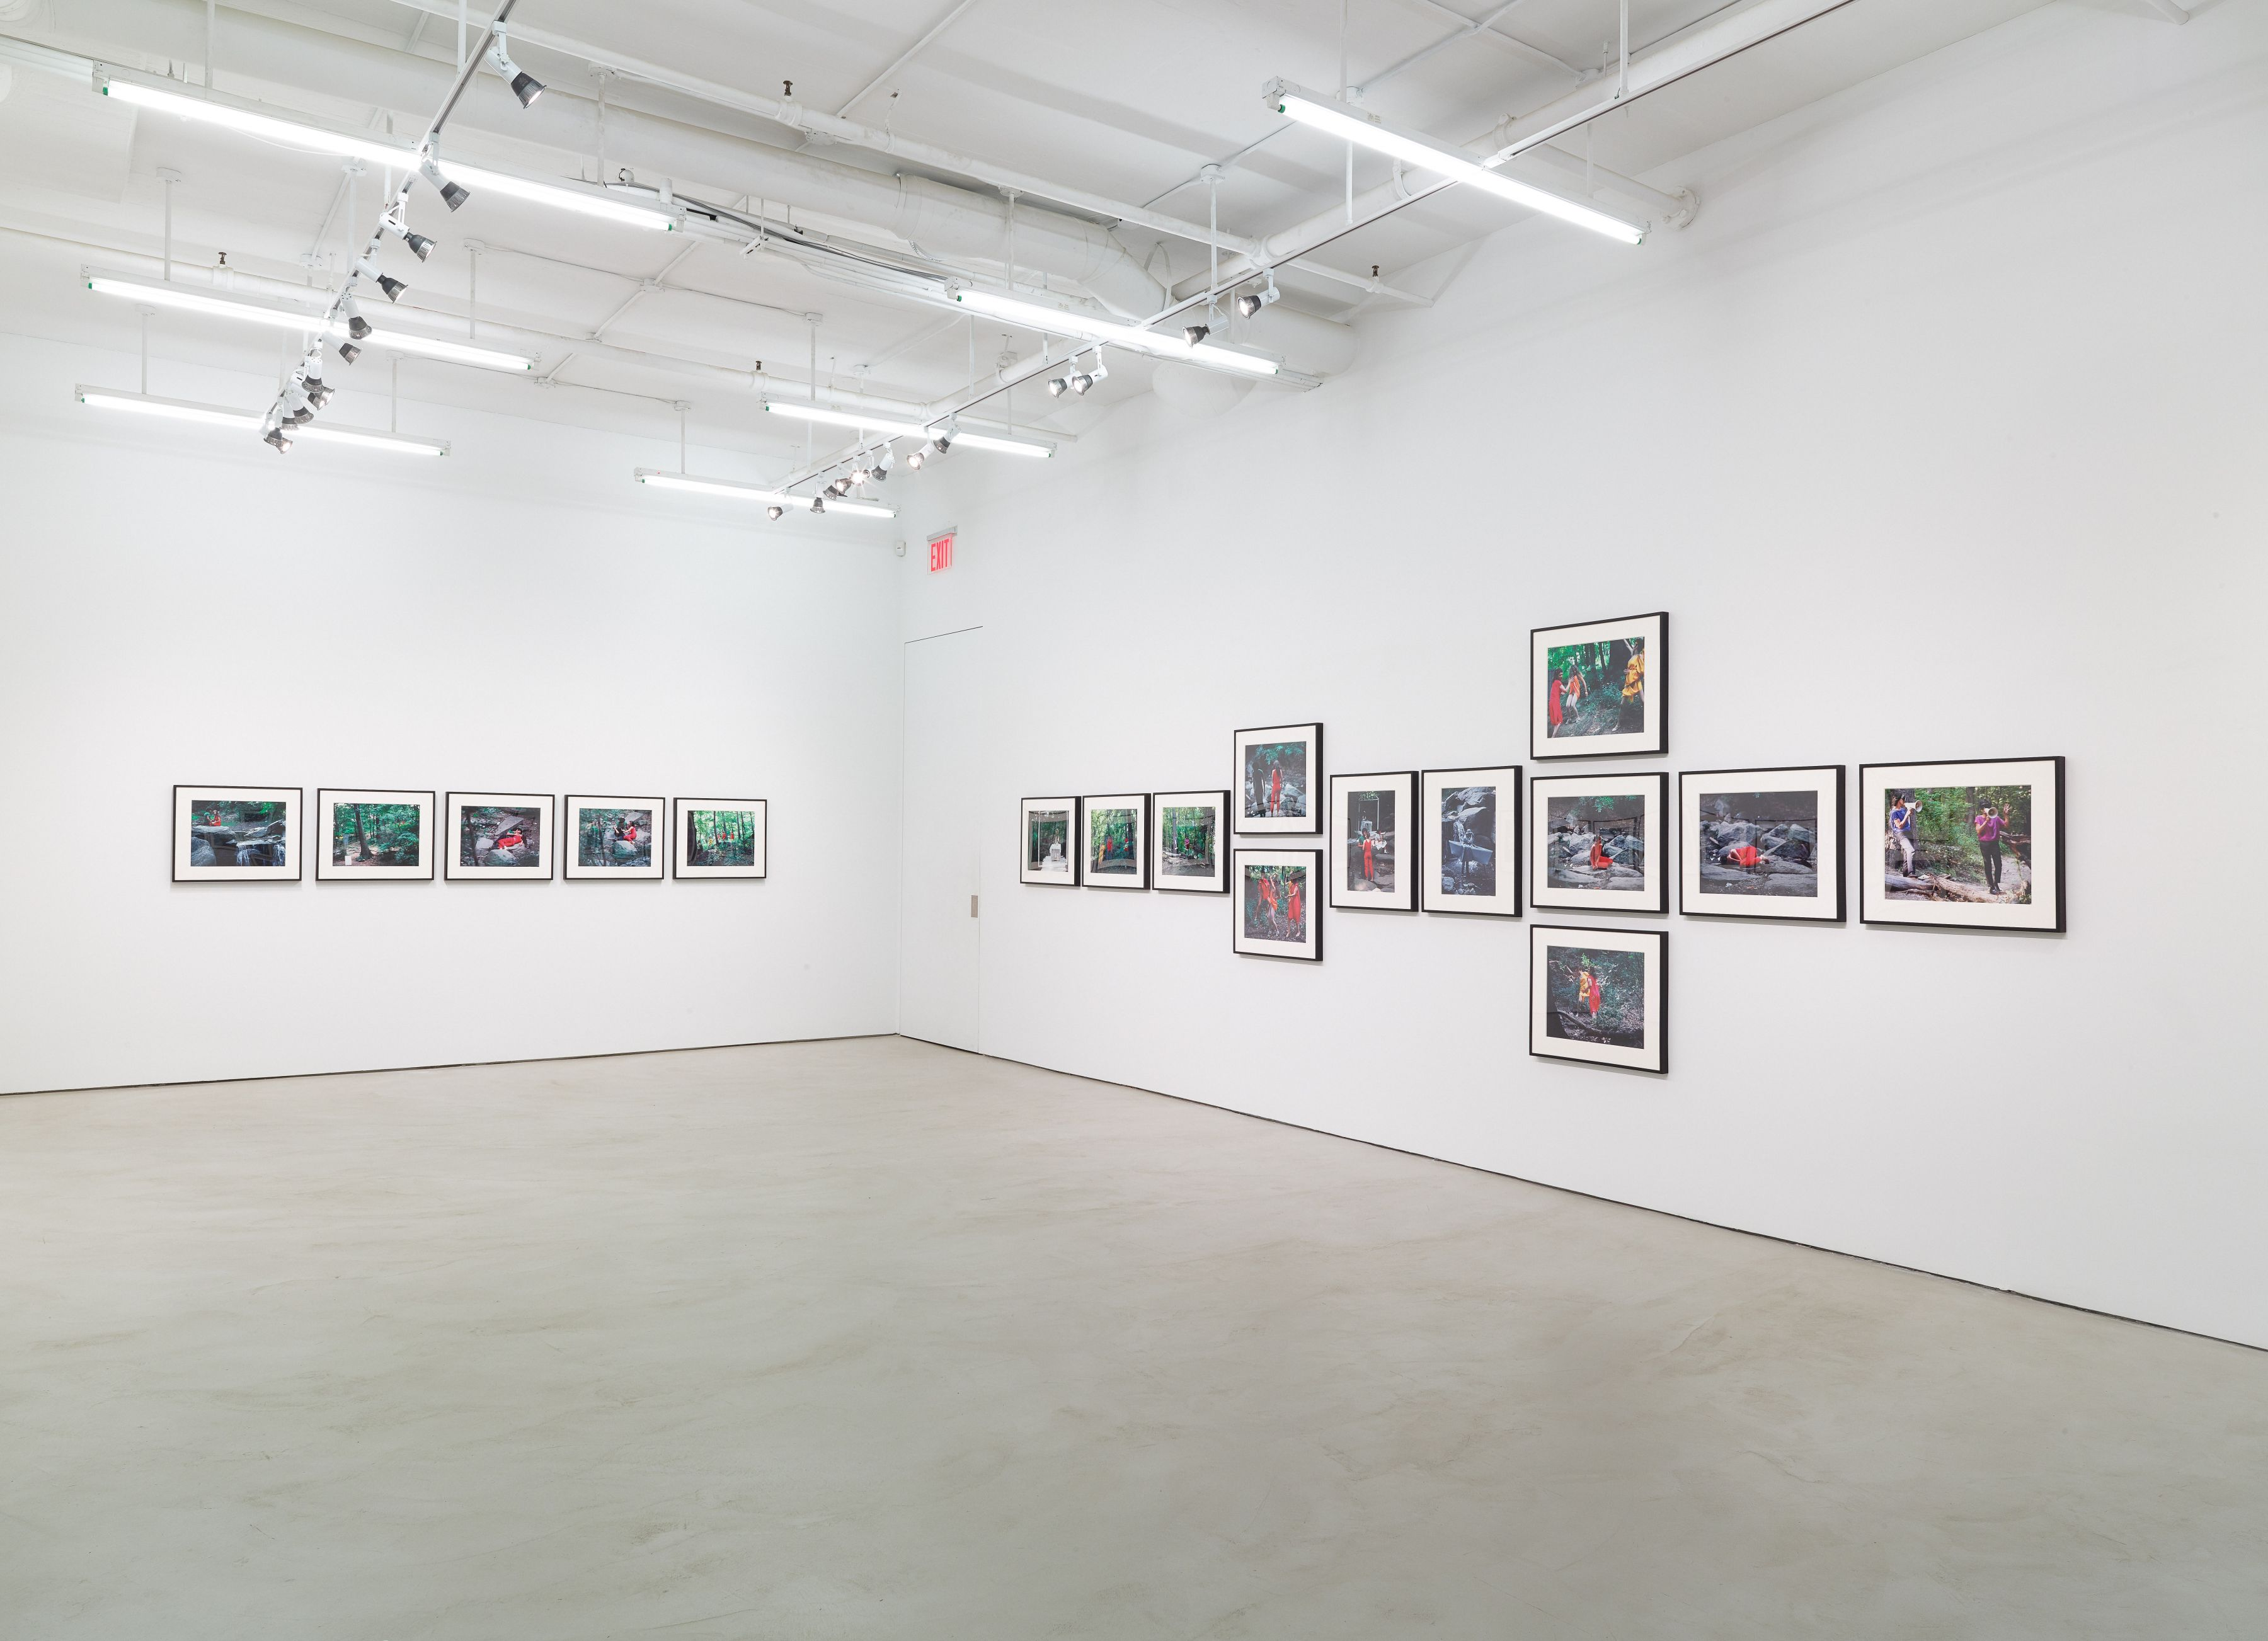 Lorraine O'Grady, installation view, Alexander Gray Associates, 2015